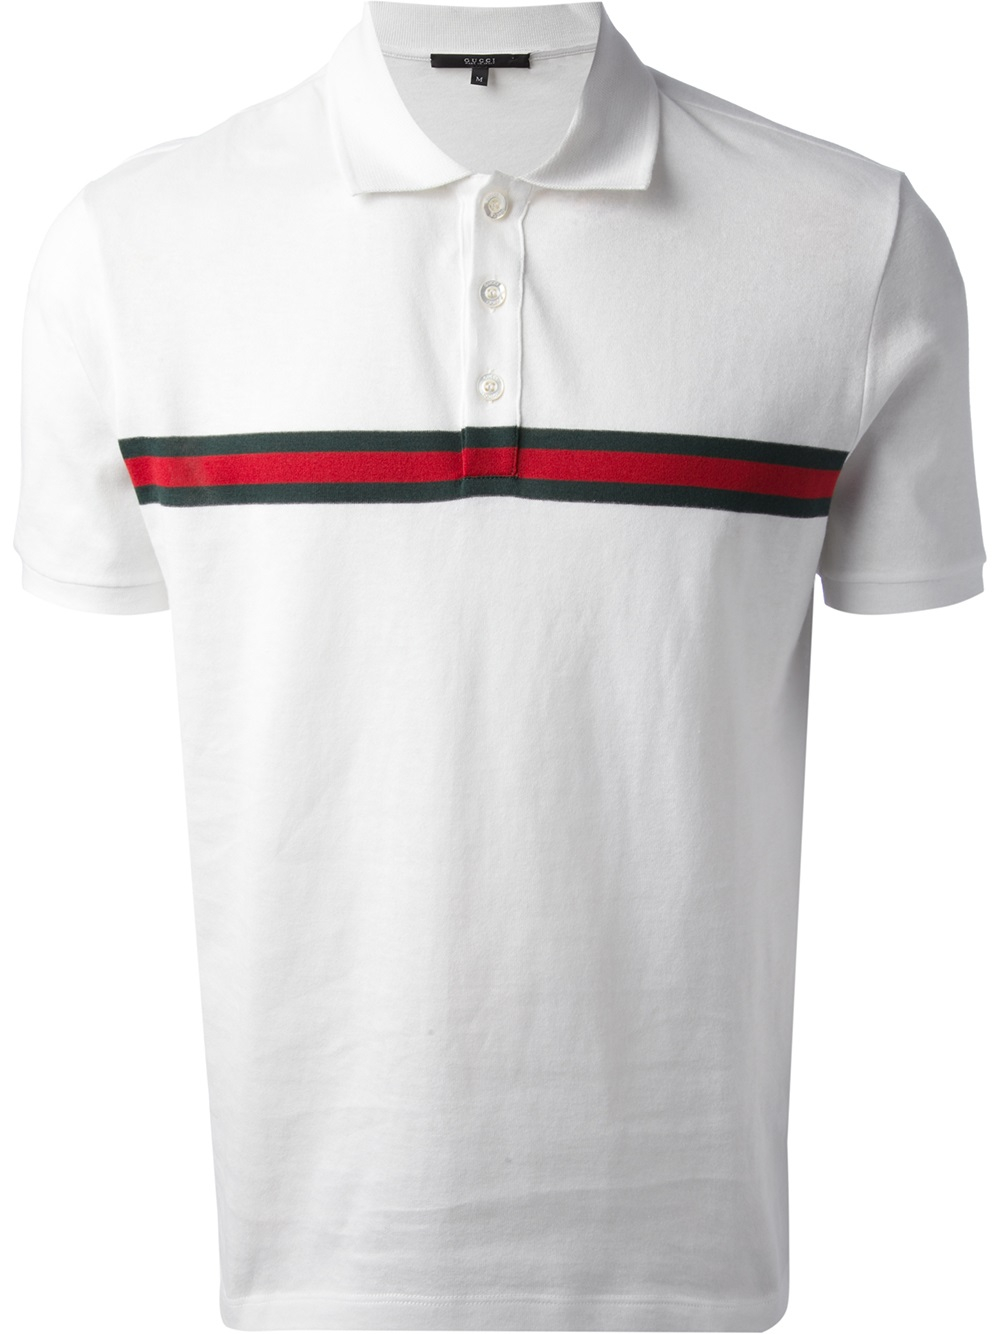 07682bcb743 Lyst - Gucci Short Sleeve Polo Shirt in White for Men